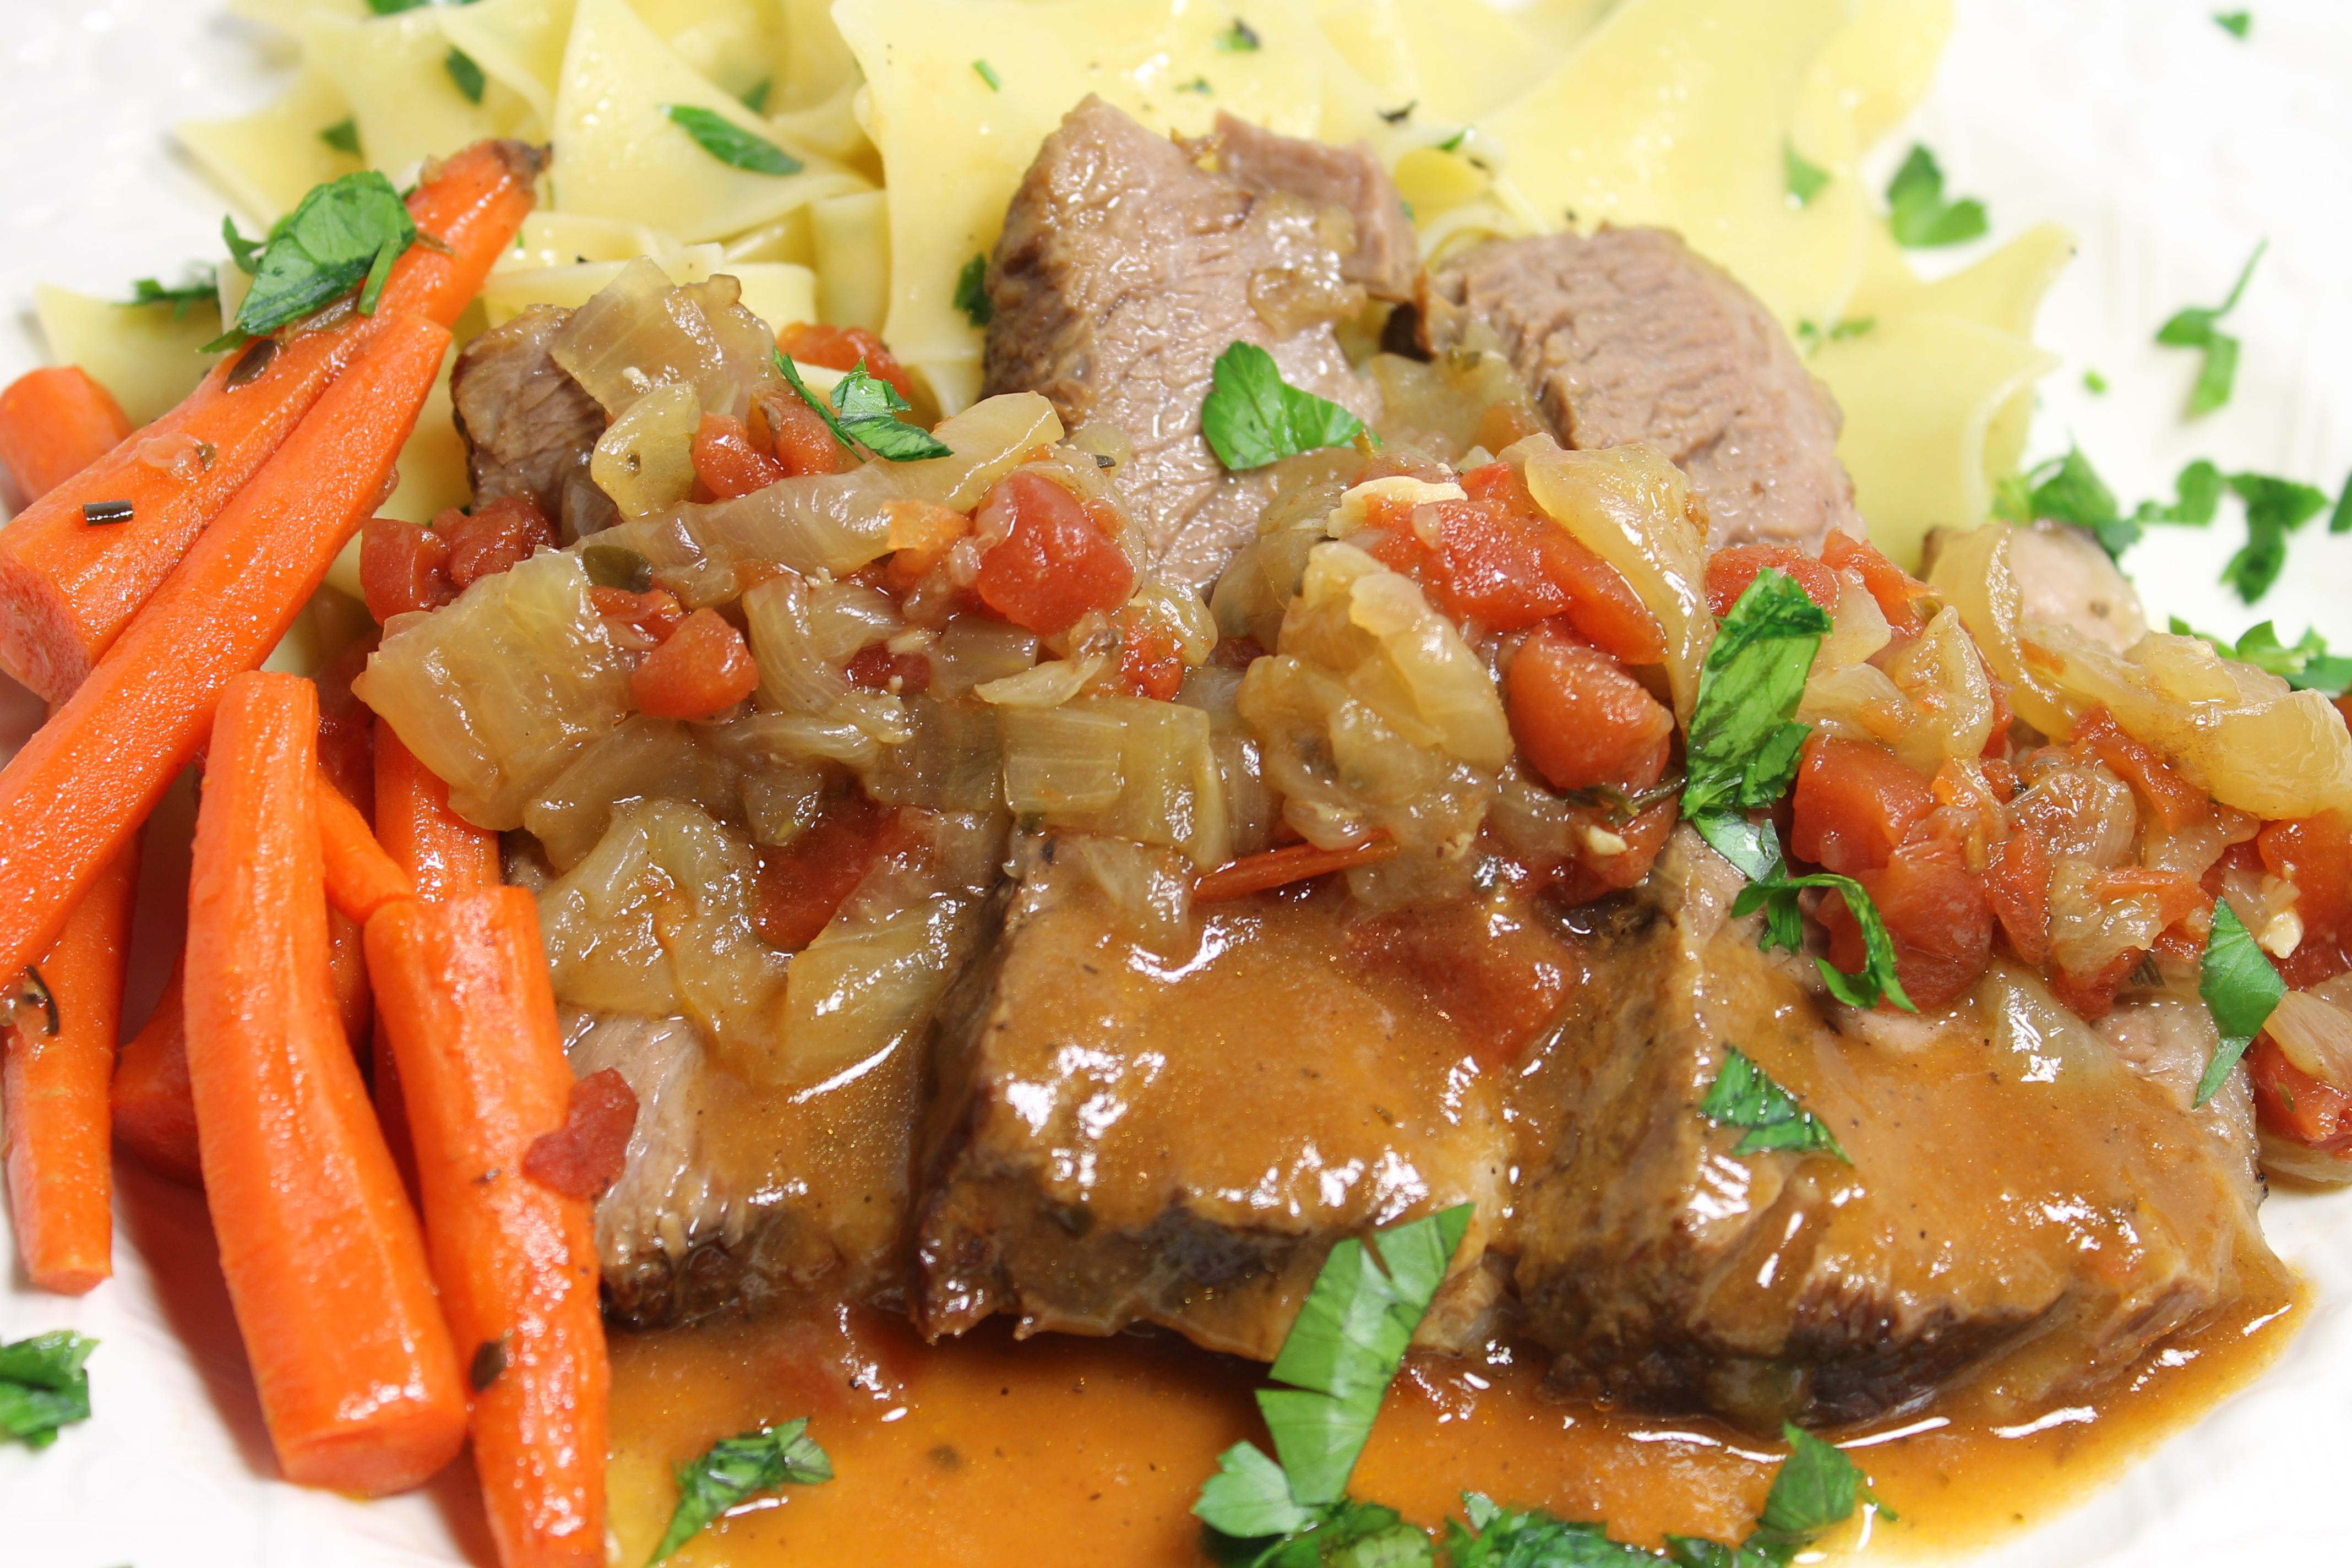 Slow Braised Beef Brisket Served With Roasted Baby Carrots And ...